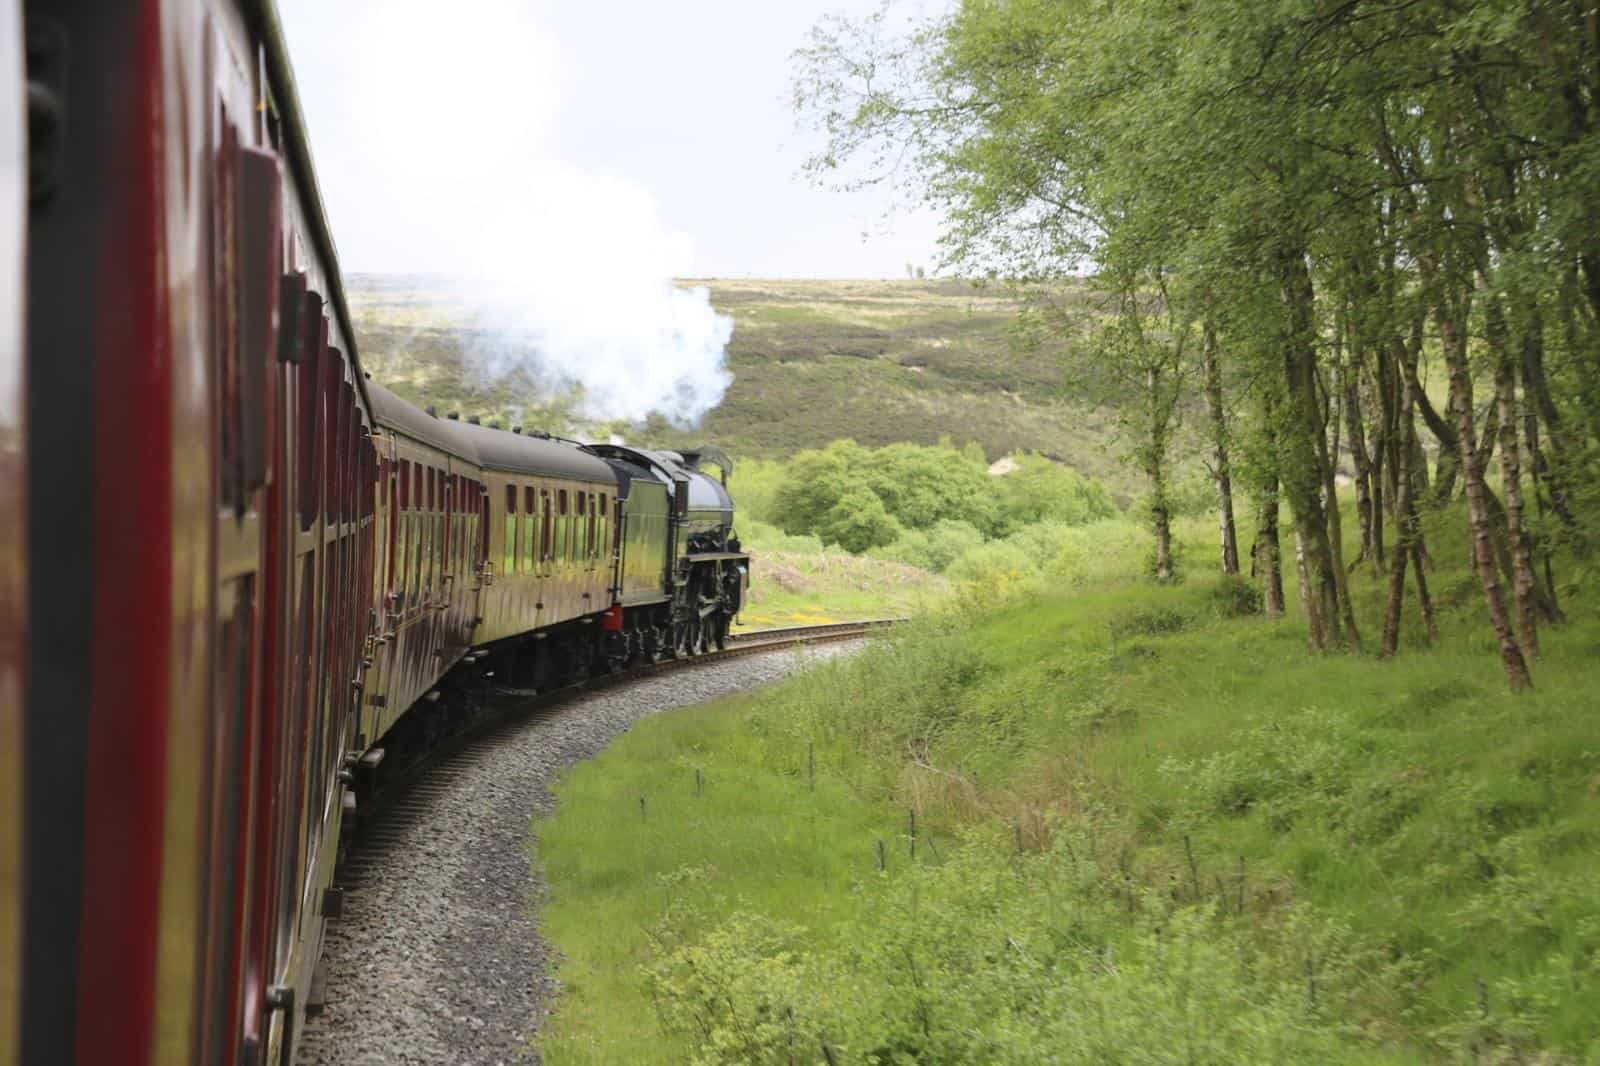 Best Day Trip for York - North Yorkshire Moors Railway - Pixabay